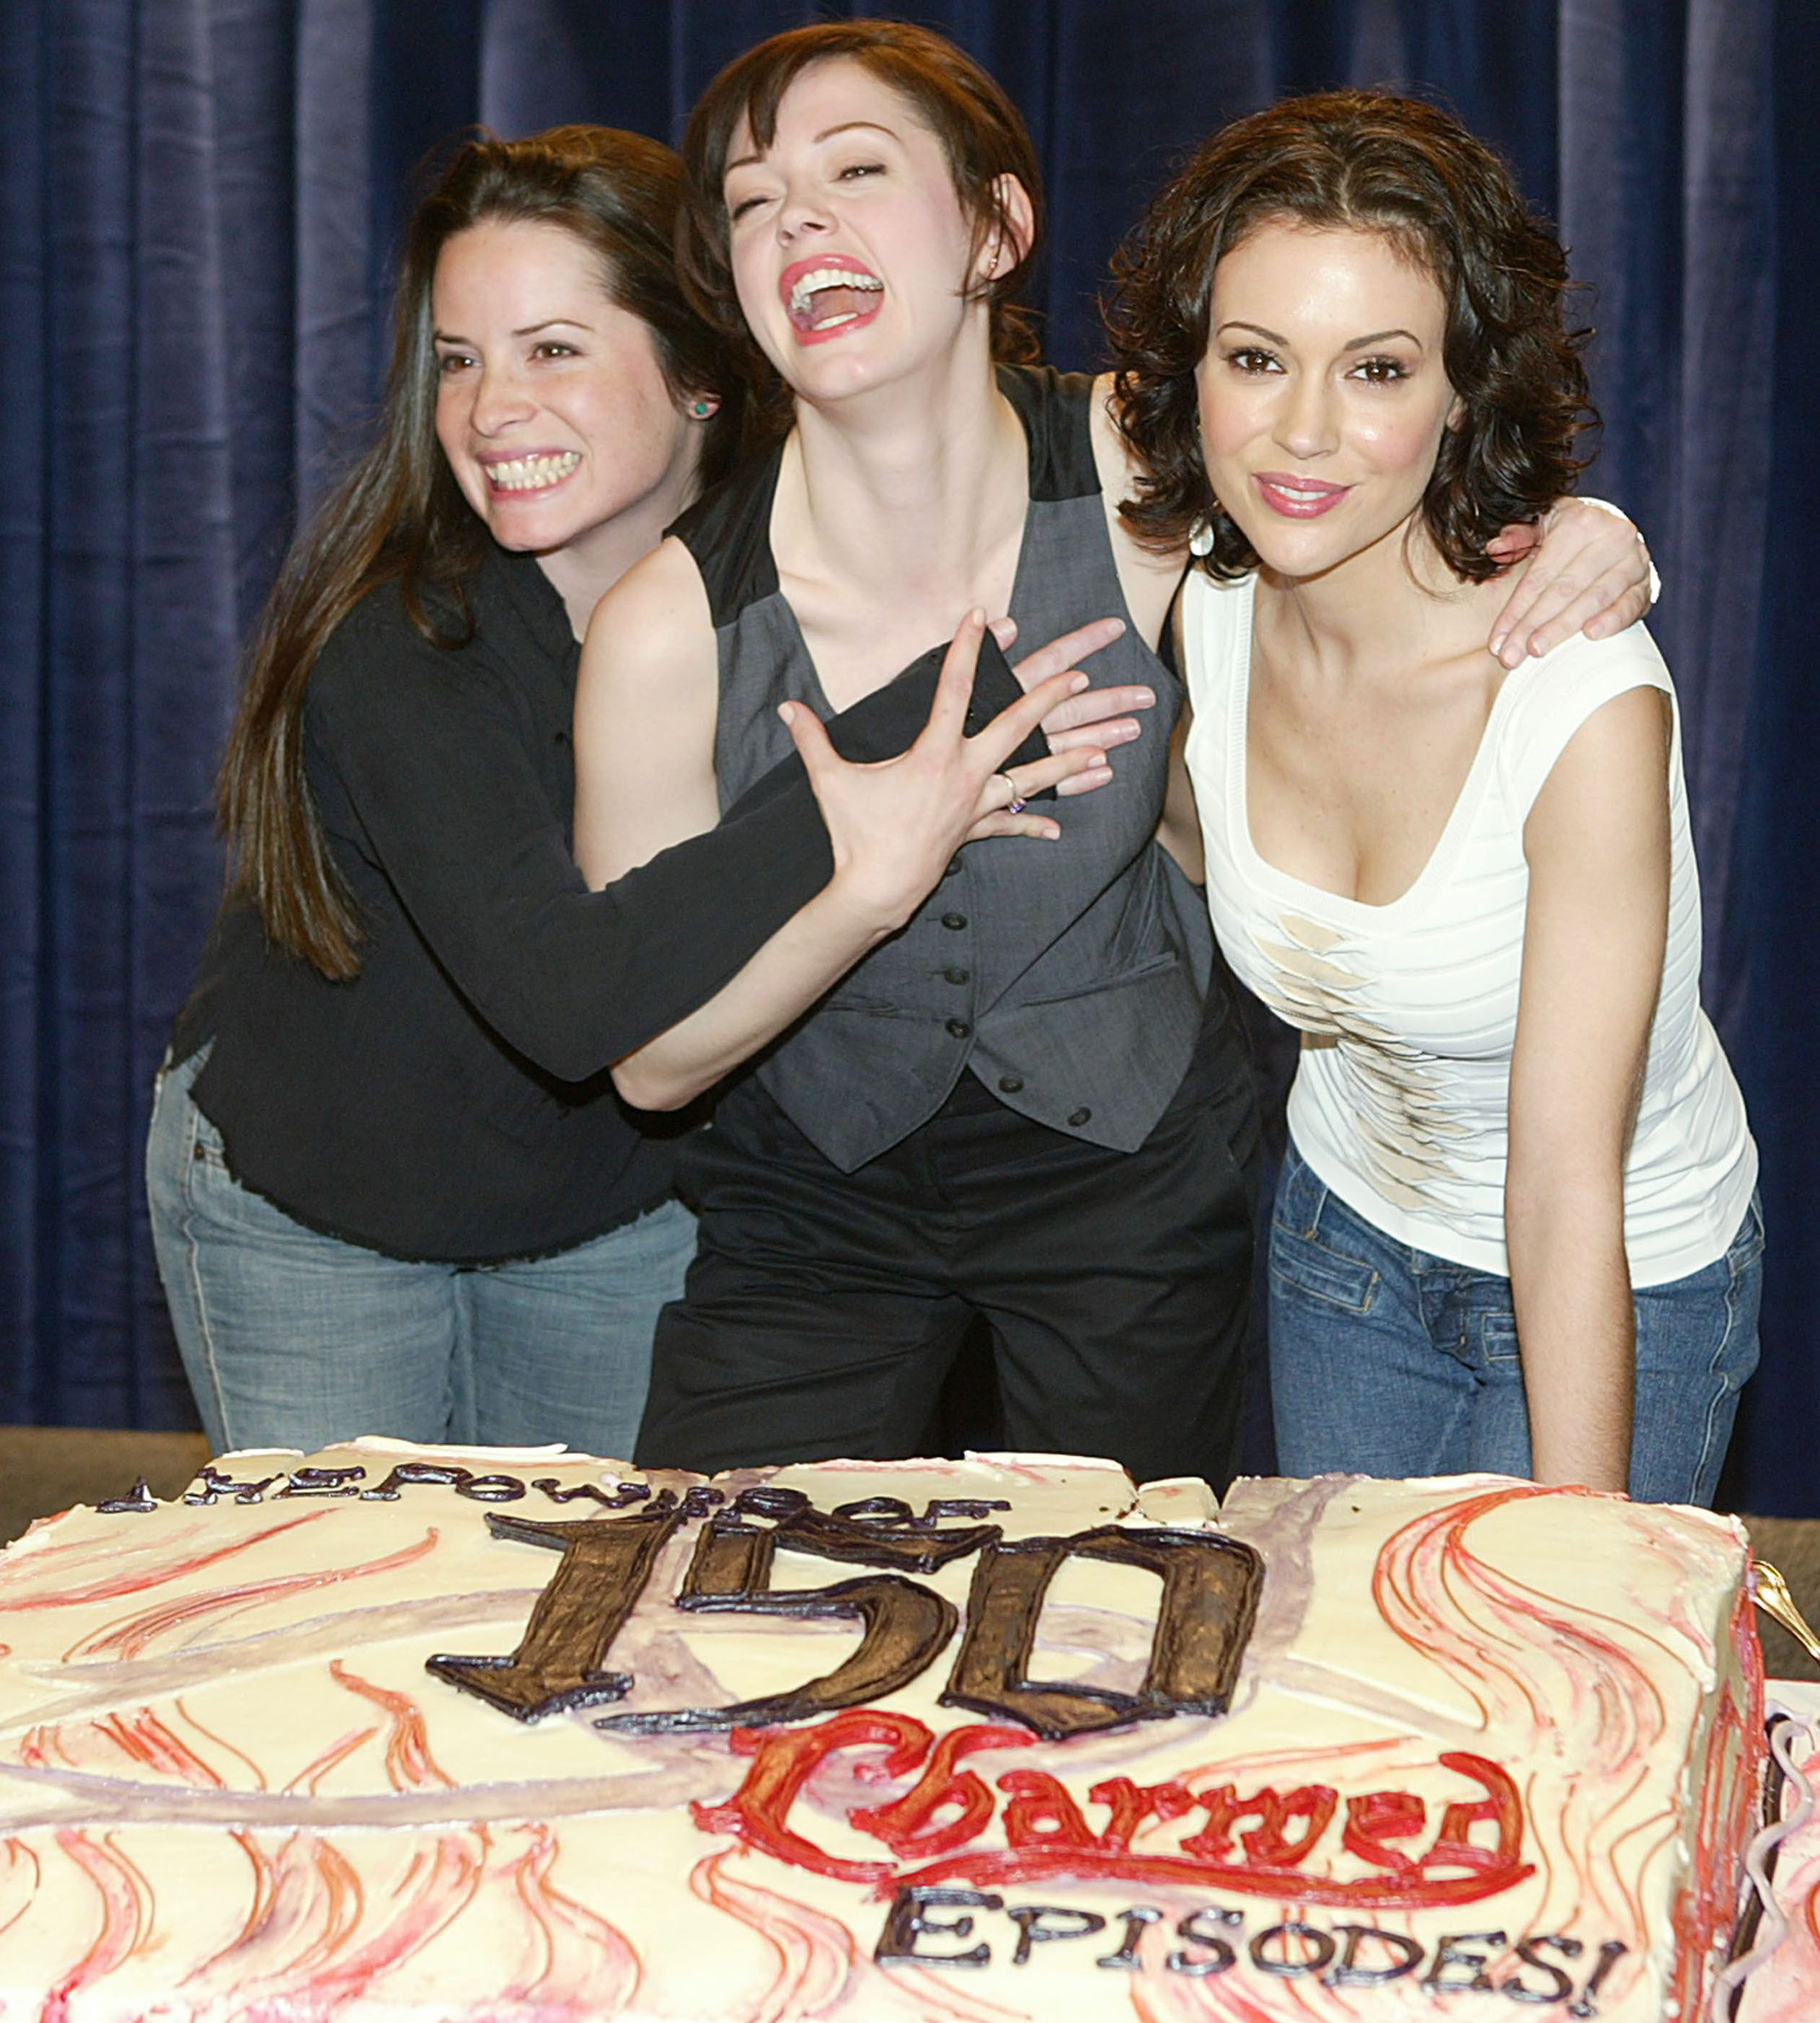 'Charmed' TV series reboot receives pilot order from The CW